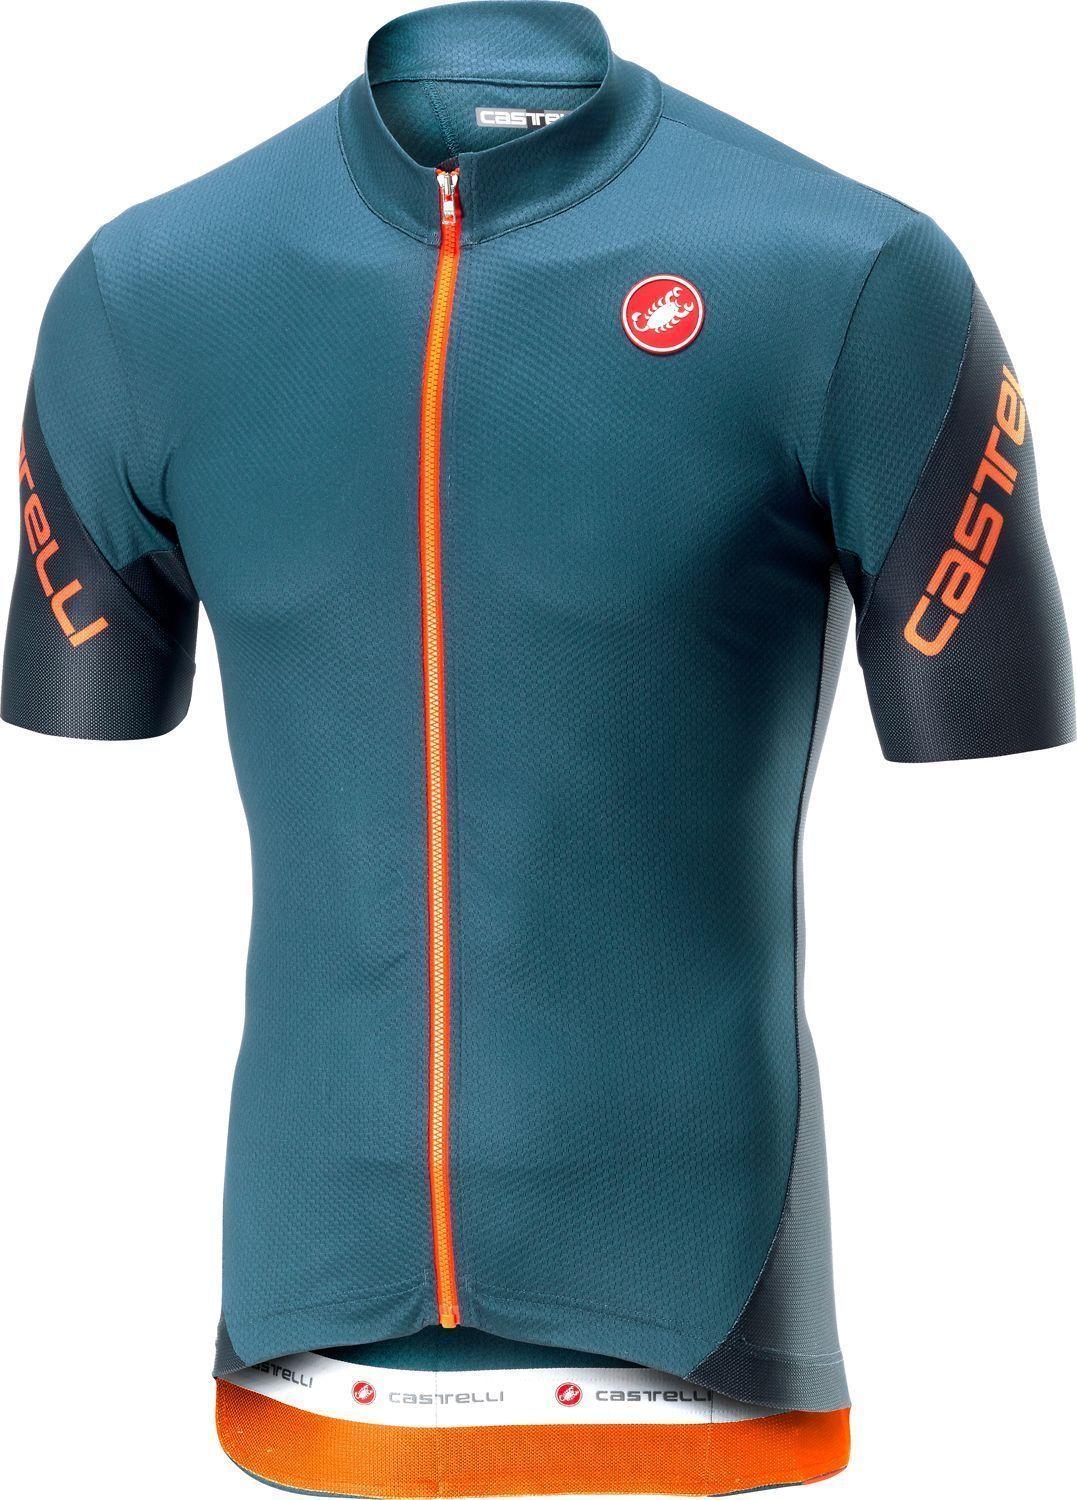 9af626f97 Castelli ENTRATA 3 short sleeve cycling jersey light steel blue. Previous